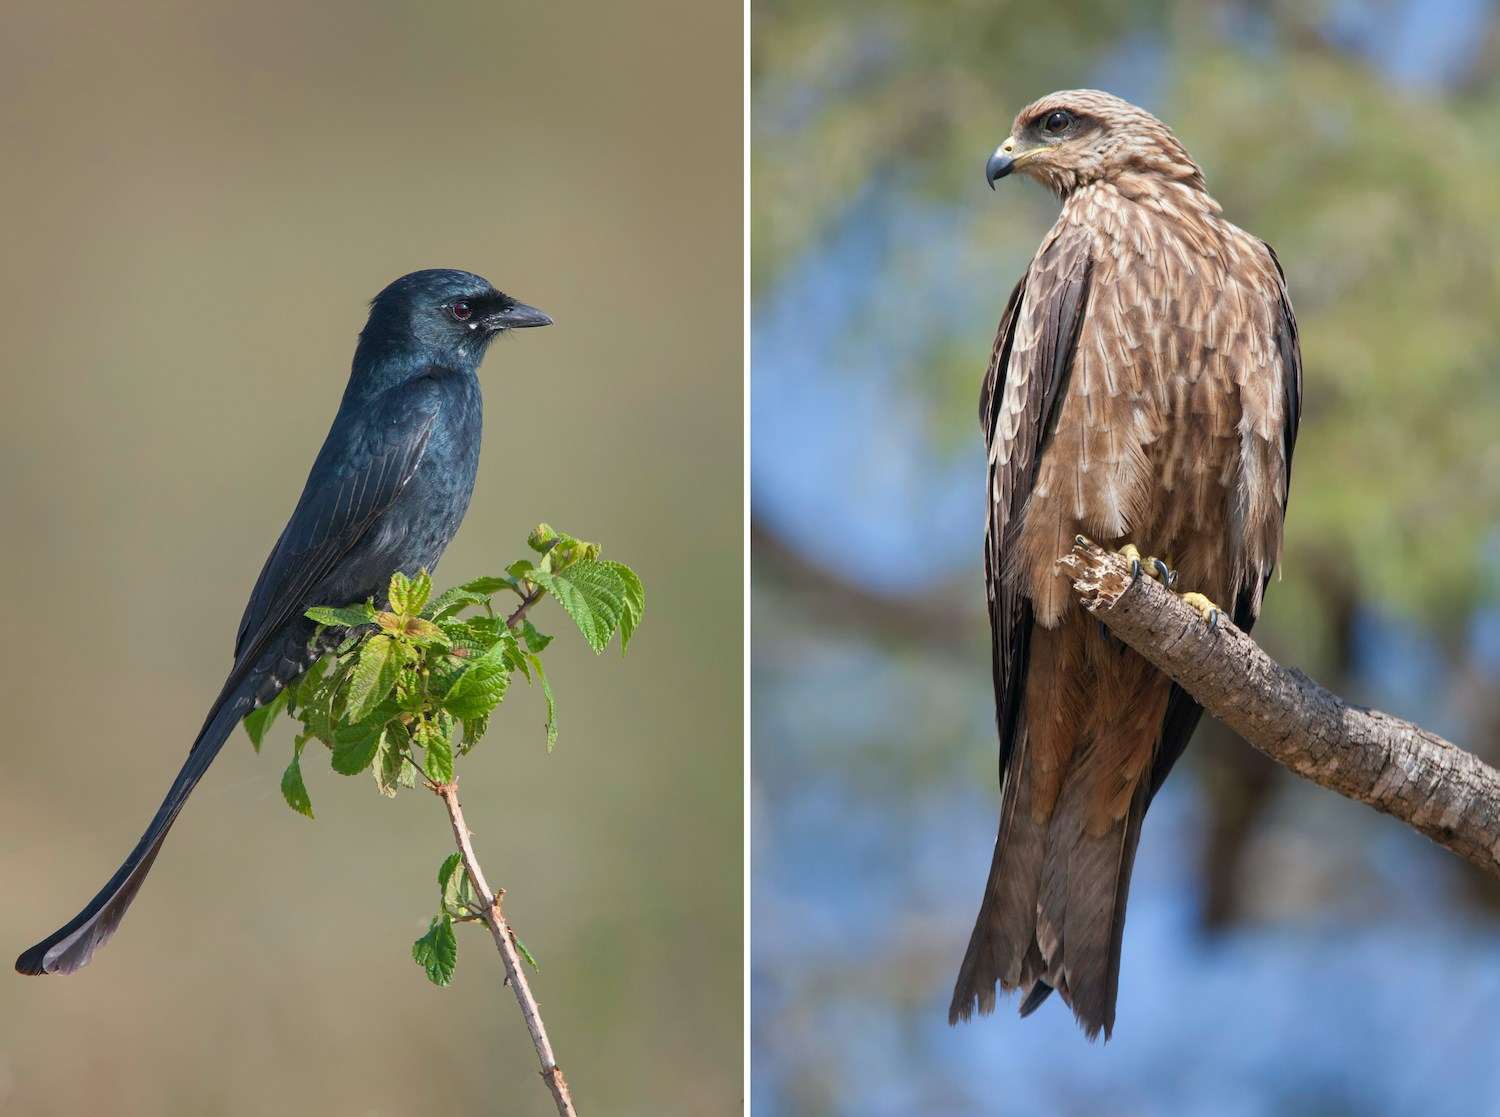 Hesaraghatta Lake is one of Bengaluru's top birding hotspots. It attracts photographers in pursuit of picture-perfect moments such as this black drongo (Dicrurus macrocercus) (left) and black kite (Milvus migrans) (right) striking a pose around the lake. Photos: Santanu Banik/Shutterstock